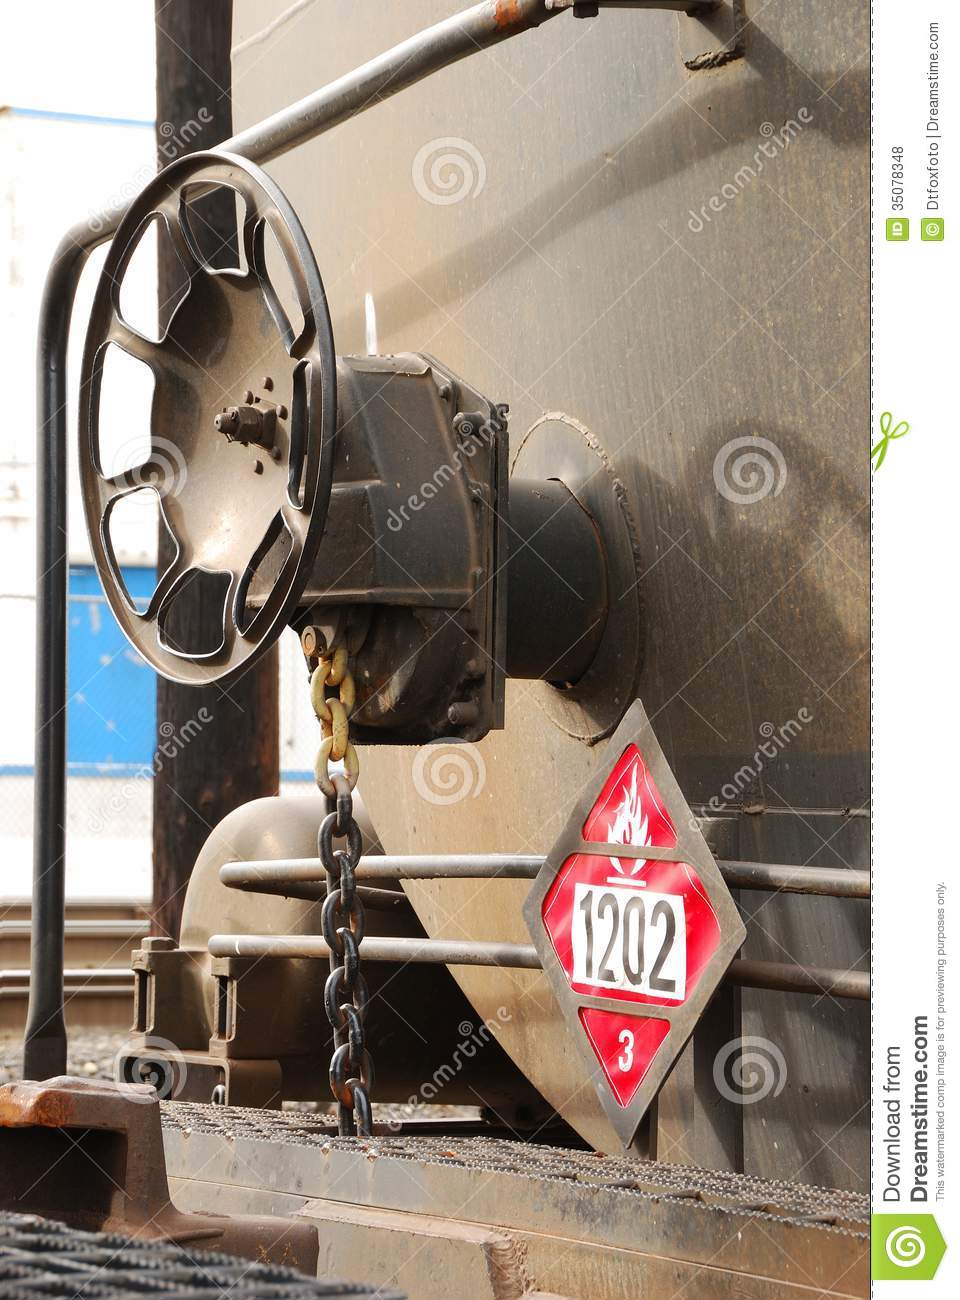 Time Road Id Roblox: Tank Car Stock Photo. Image Of Fuel, Petroleum, Road